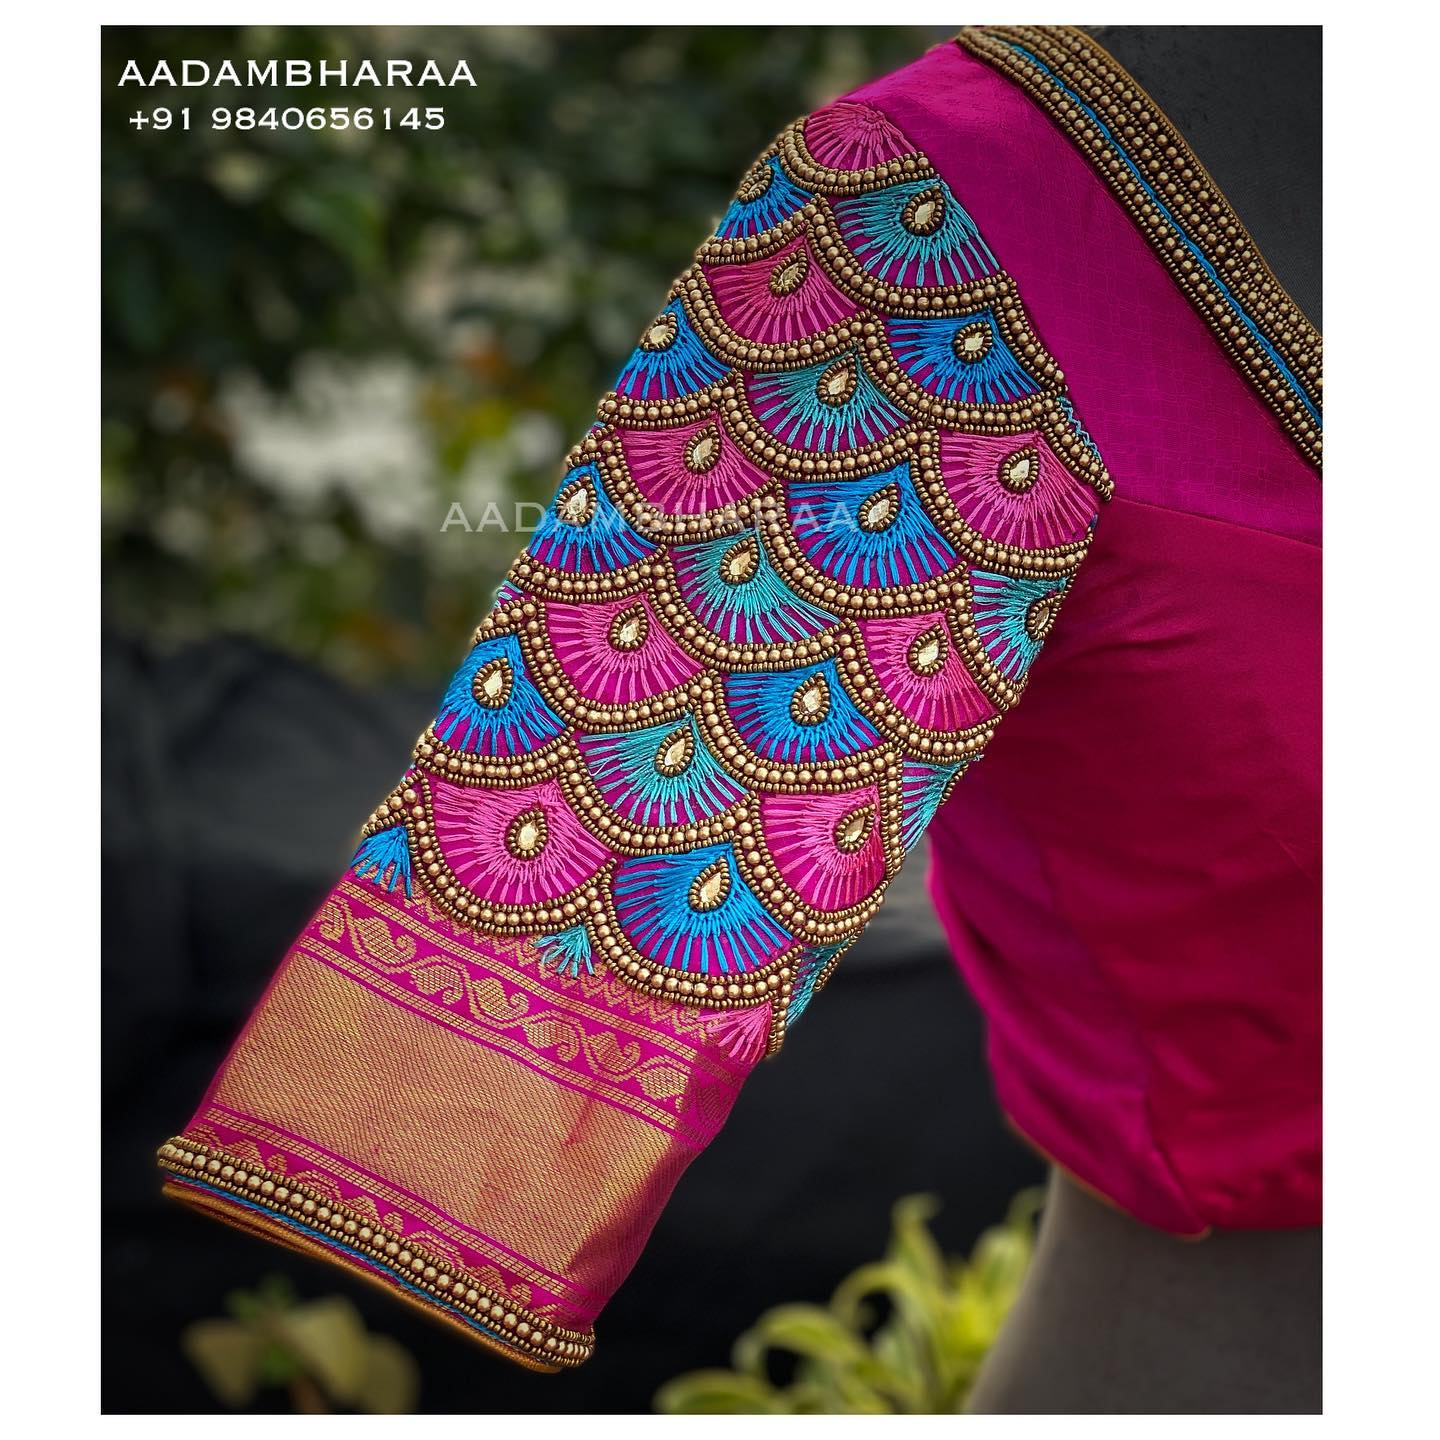 Signature Peacock Scallop Design hand embroidery in the shades of Blue and pink . Contact us for Customisations +91 9840656145 2021-08-06